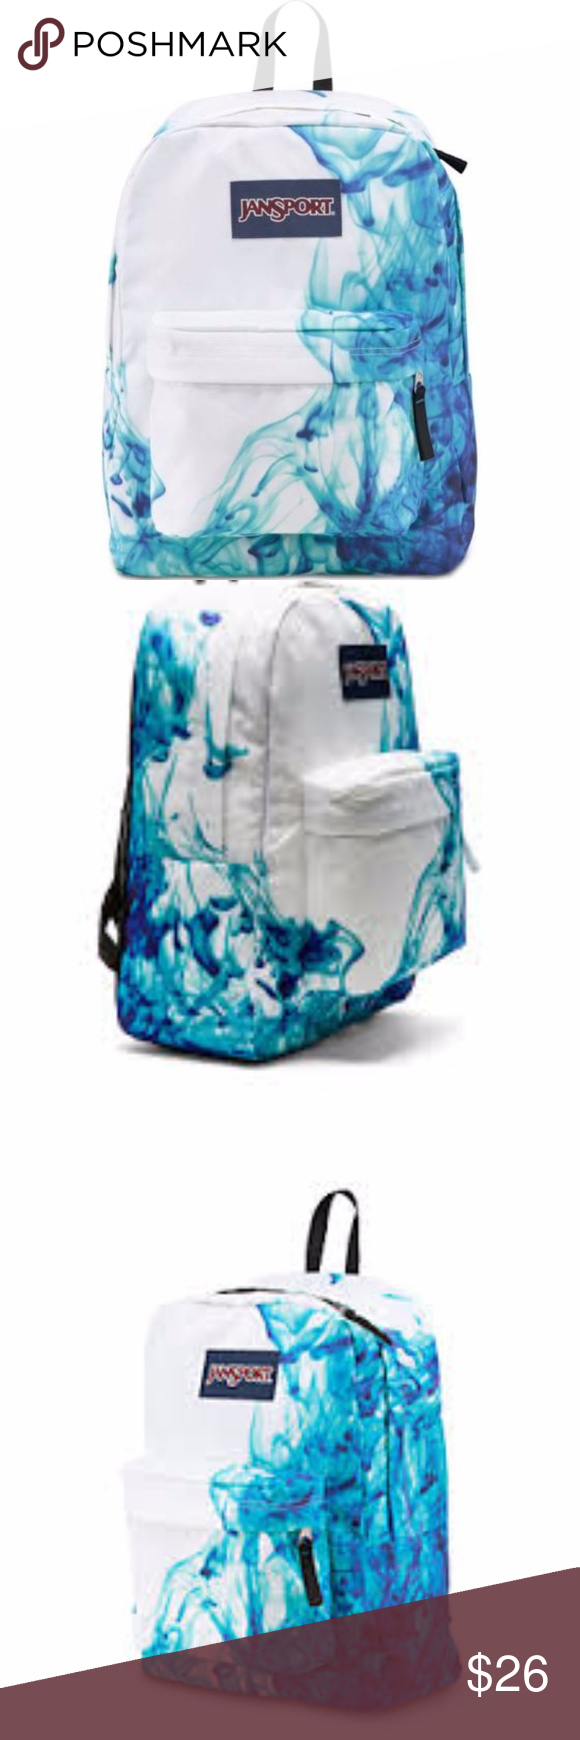 a39d5371826 White & Turquoise Jansport School Pack / Book Bag This is a brand ...